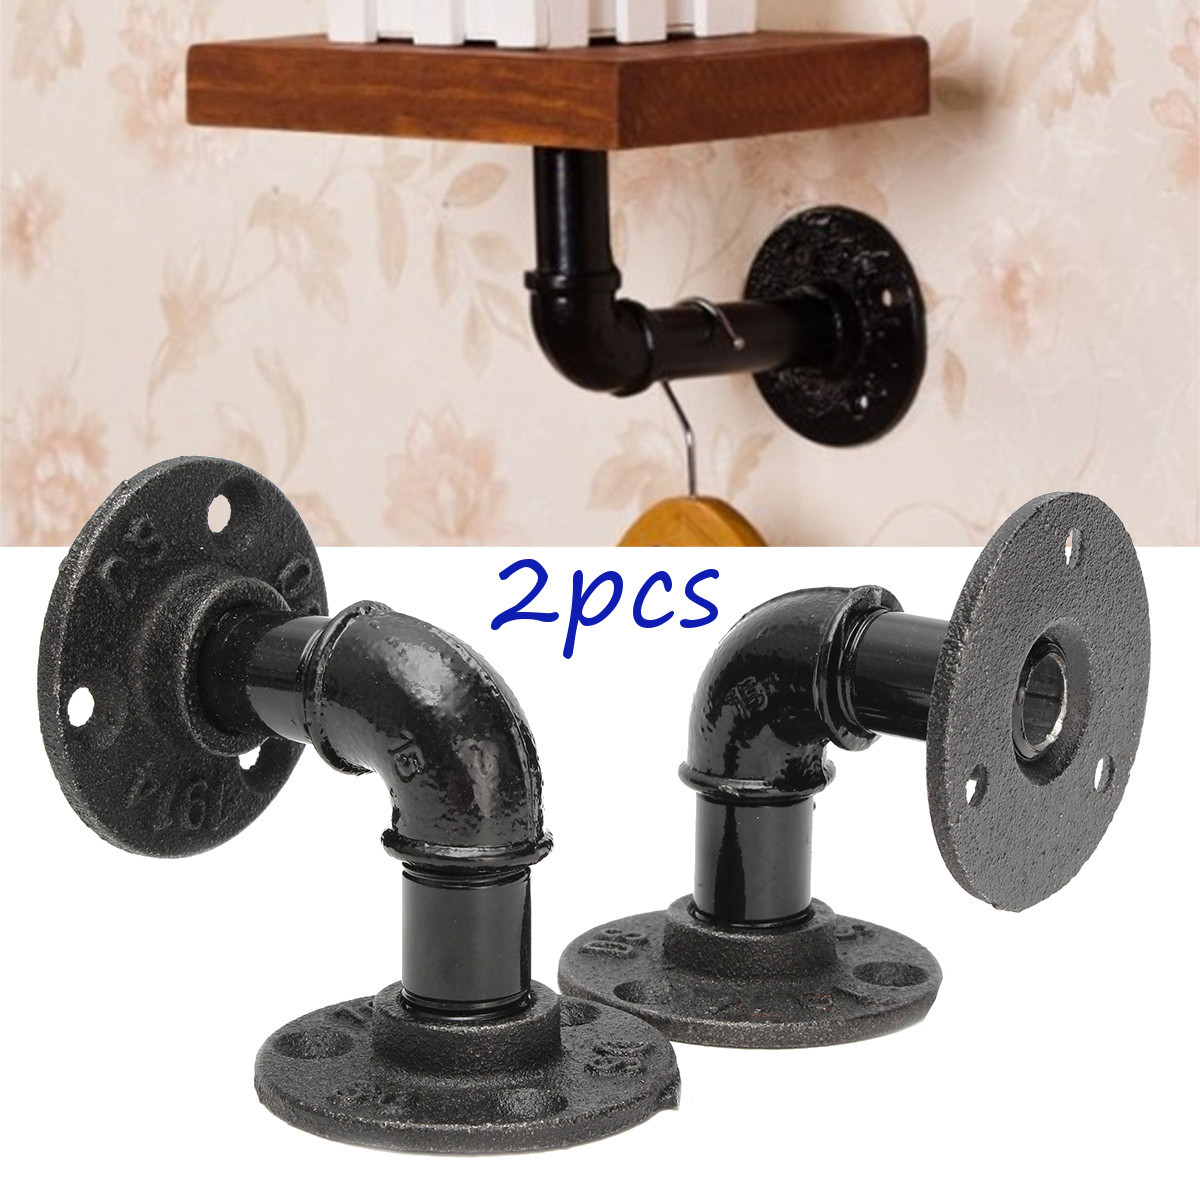 2Pcs Vintage Country Style Pipe Shelf Bracket Stand Holder for Industrial Steampunk DIY Home Decor